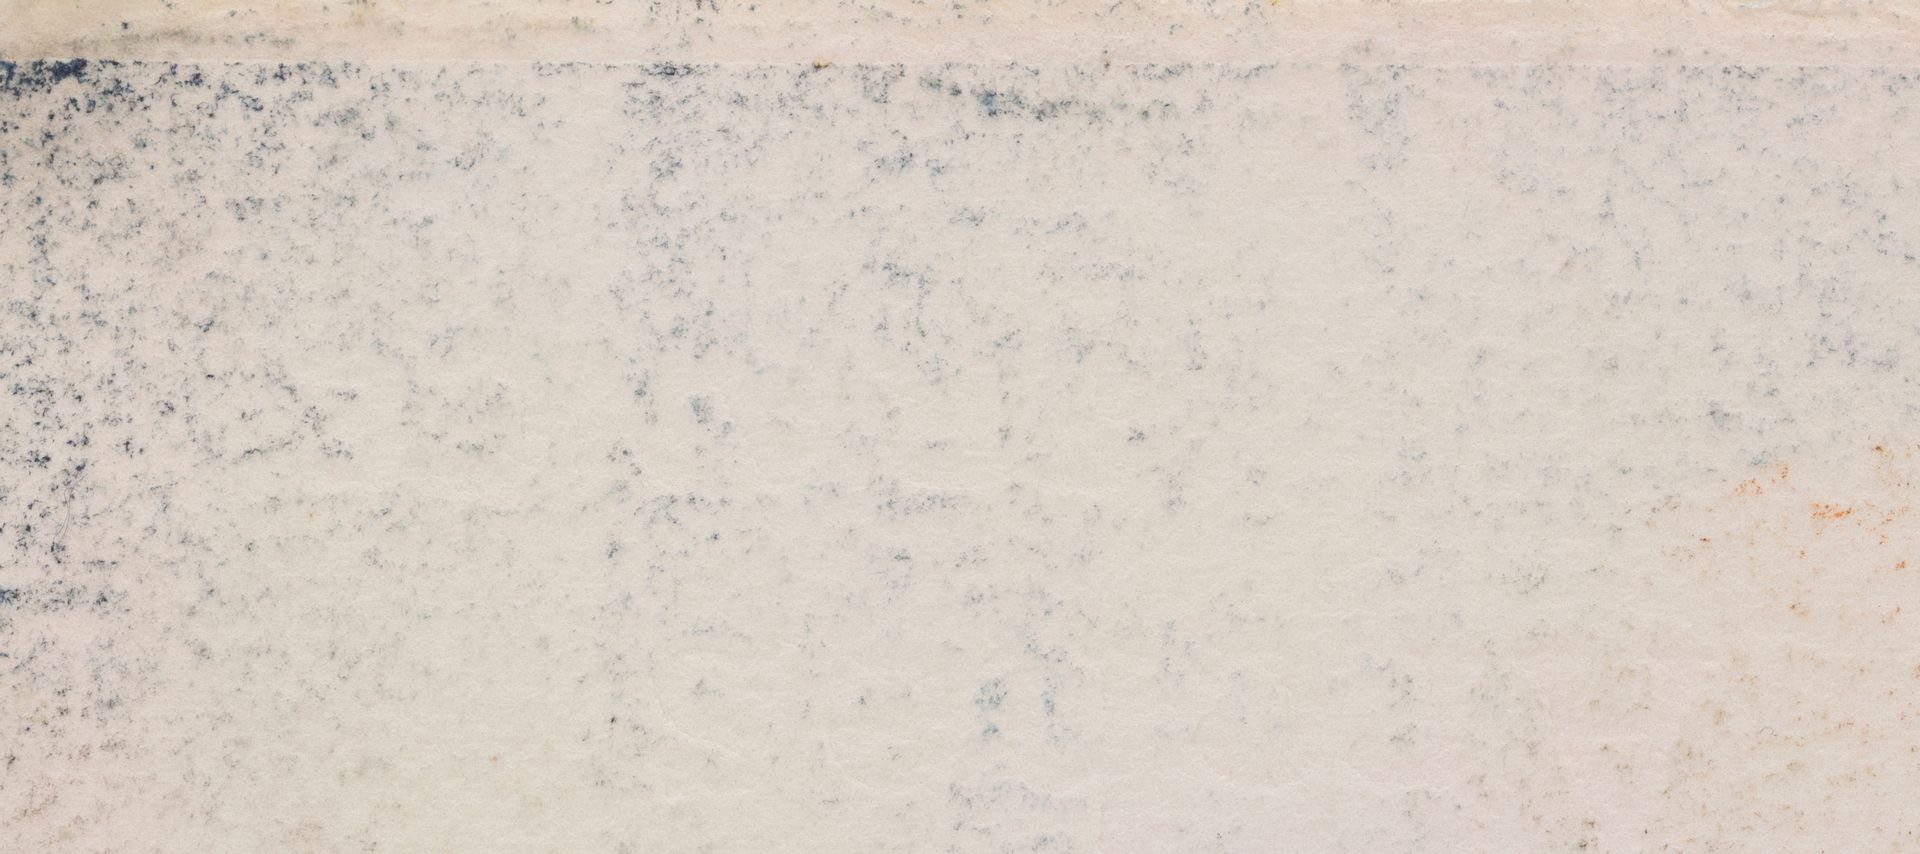 Lot 484: Beauford Delaney Estate, Abstract on Paper No. 351